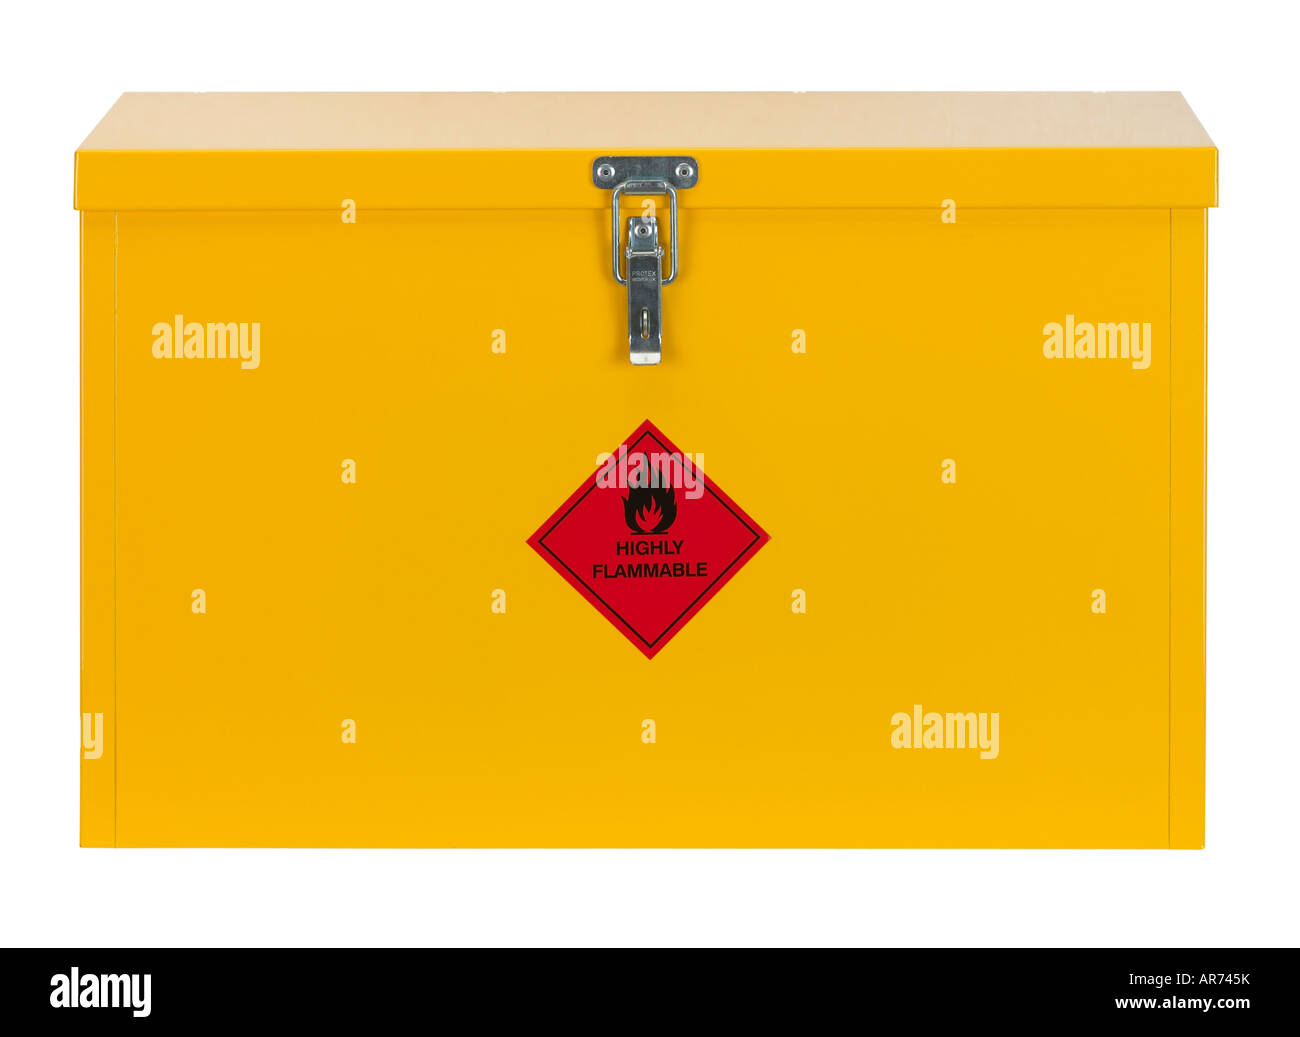 YELLOW STEEL CABINET WITH FLAMMABLE WARNING SIGN ON FRONT - Stock Image